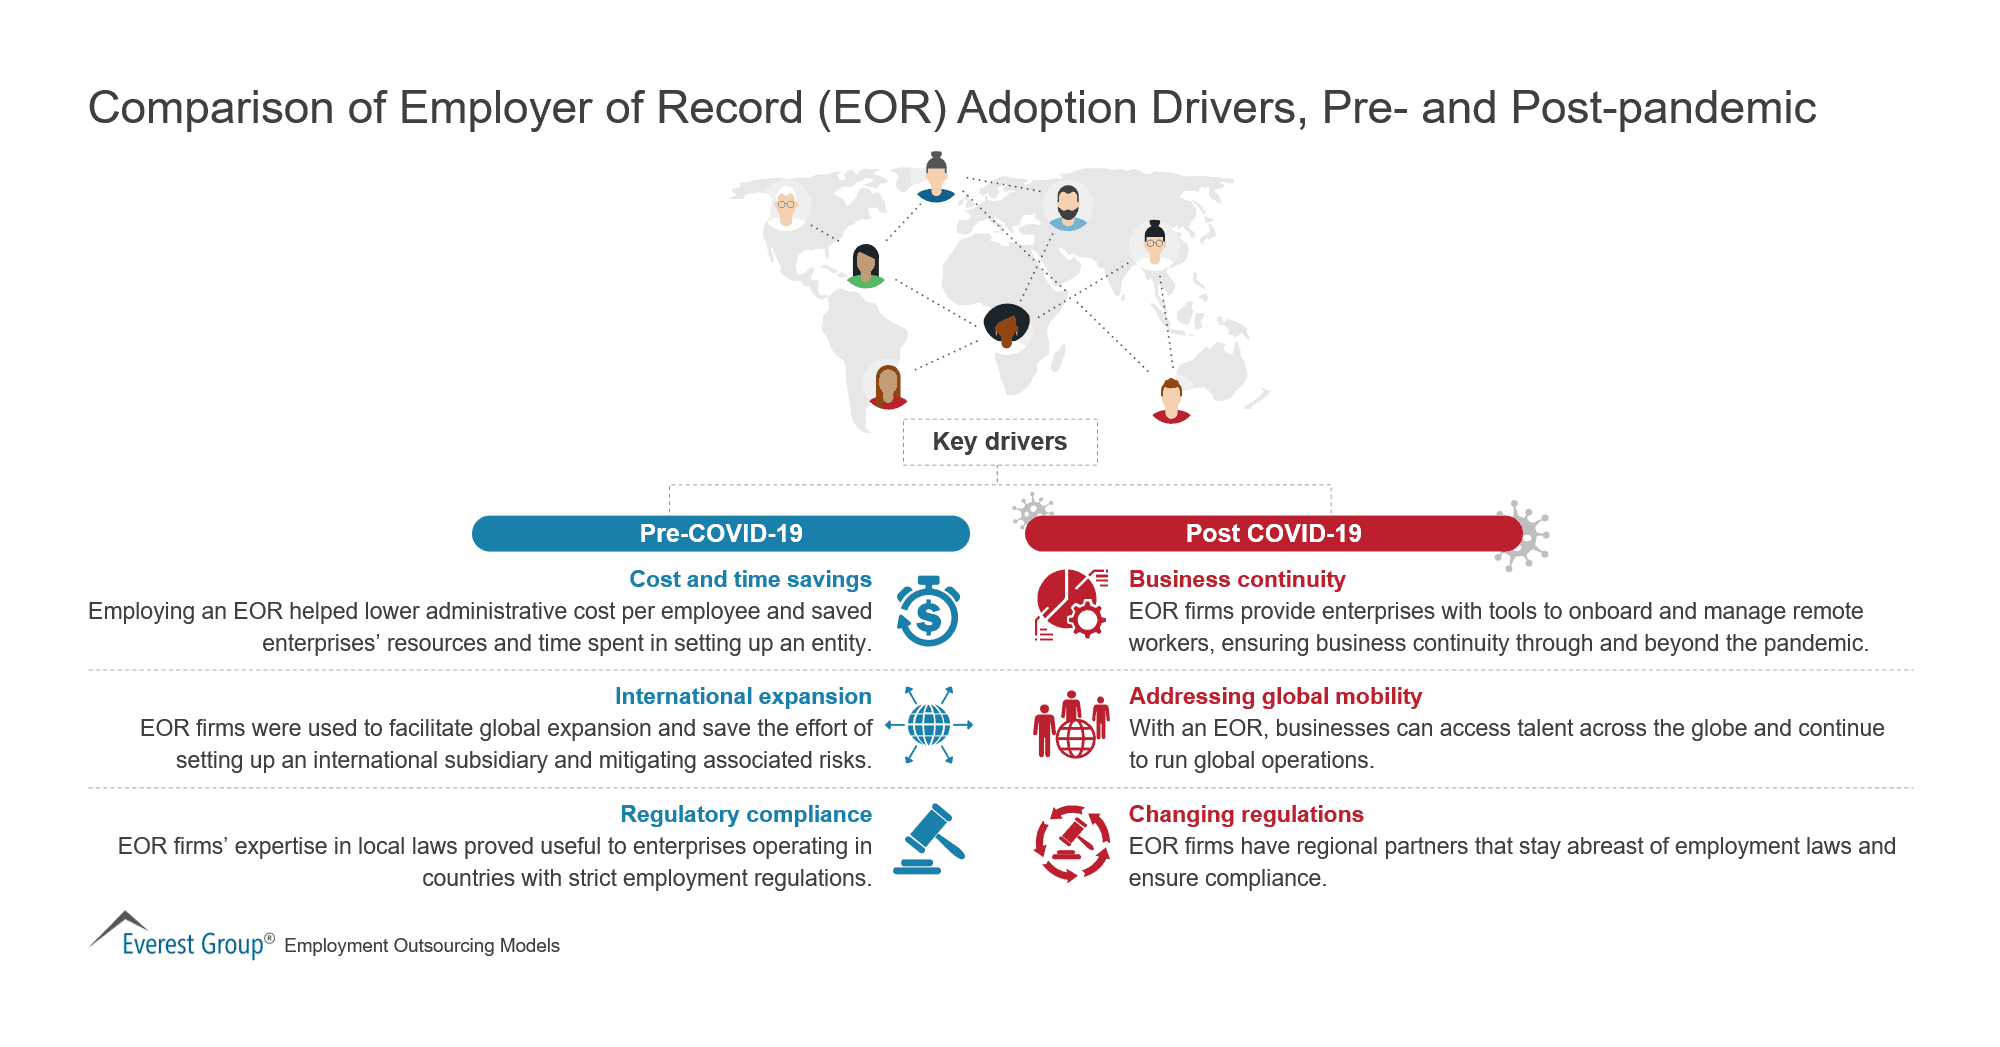 Comparison of Employer of Record (EOR) Adoption Drivers, Pre- and Post-pandemic